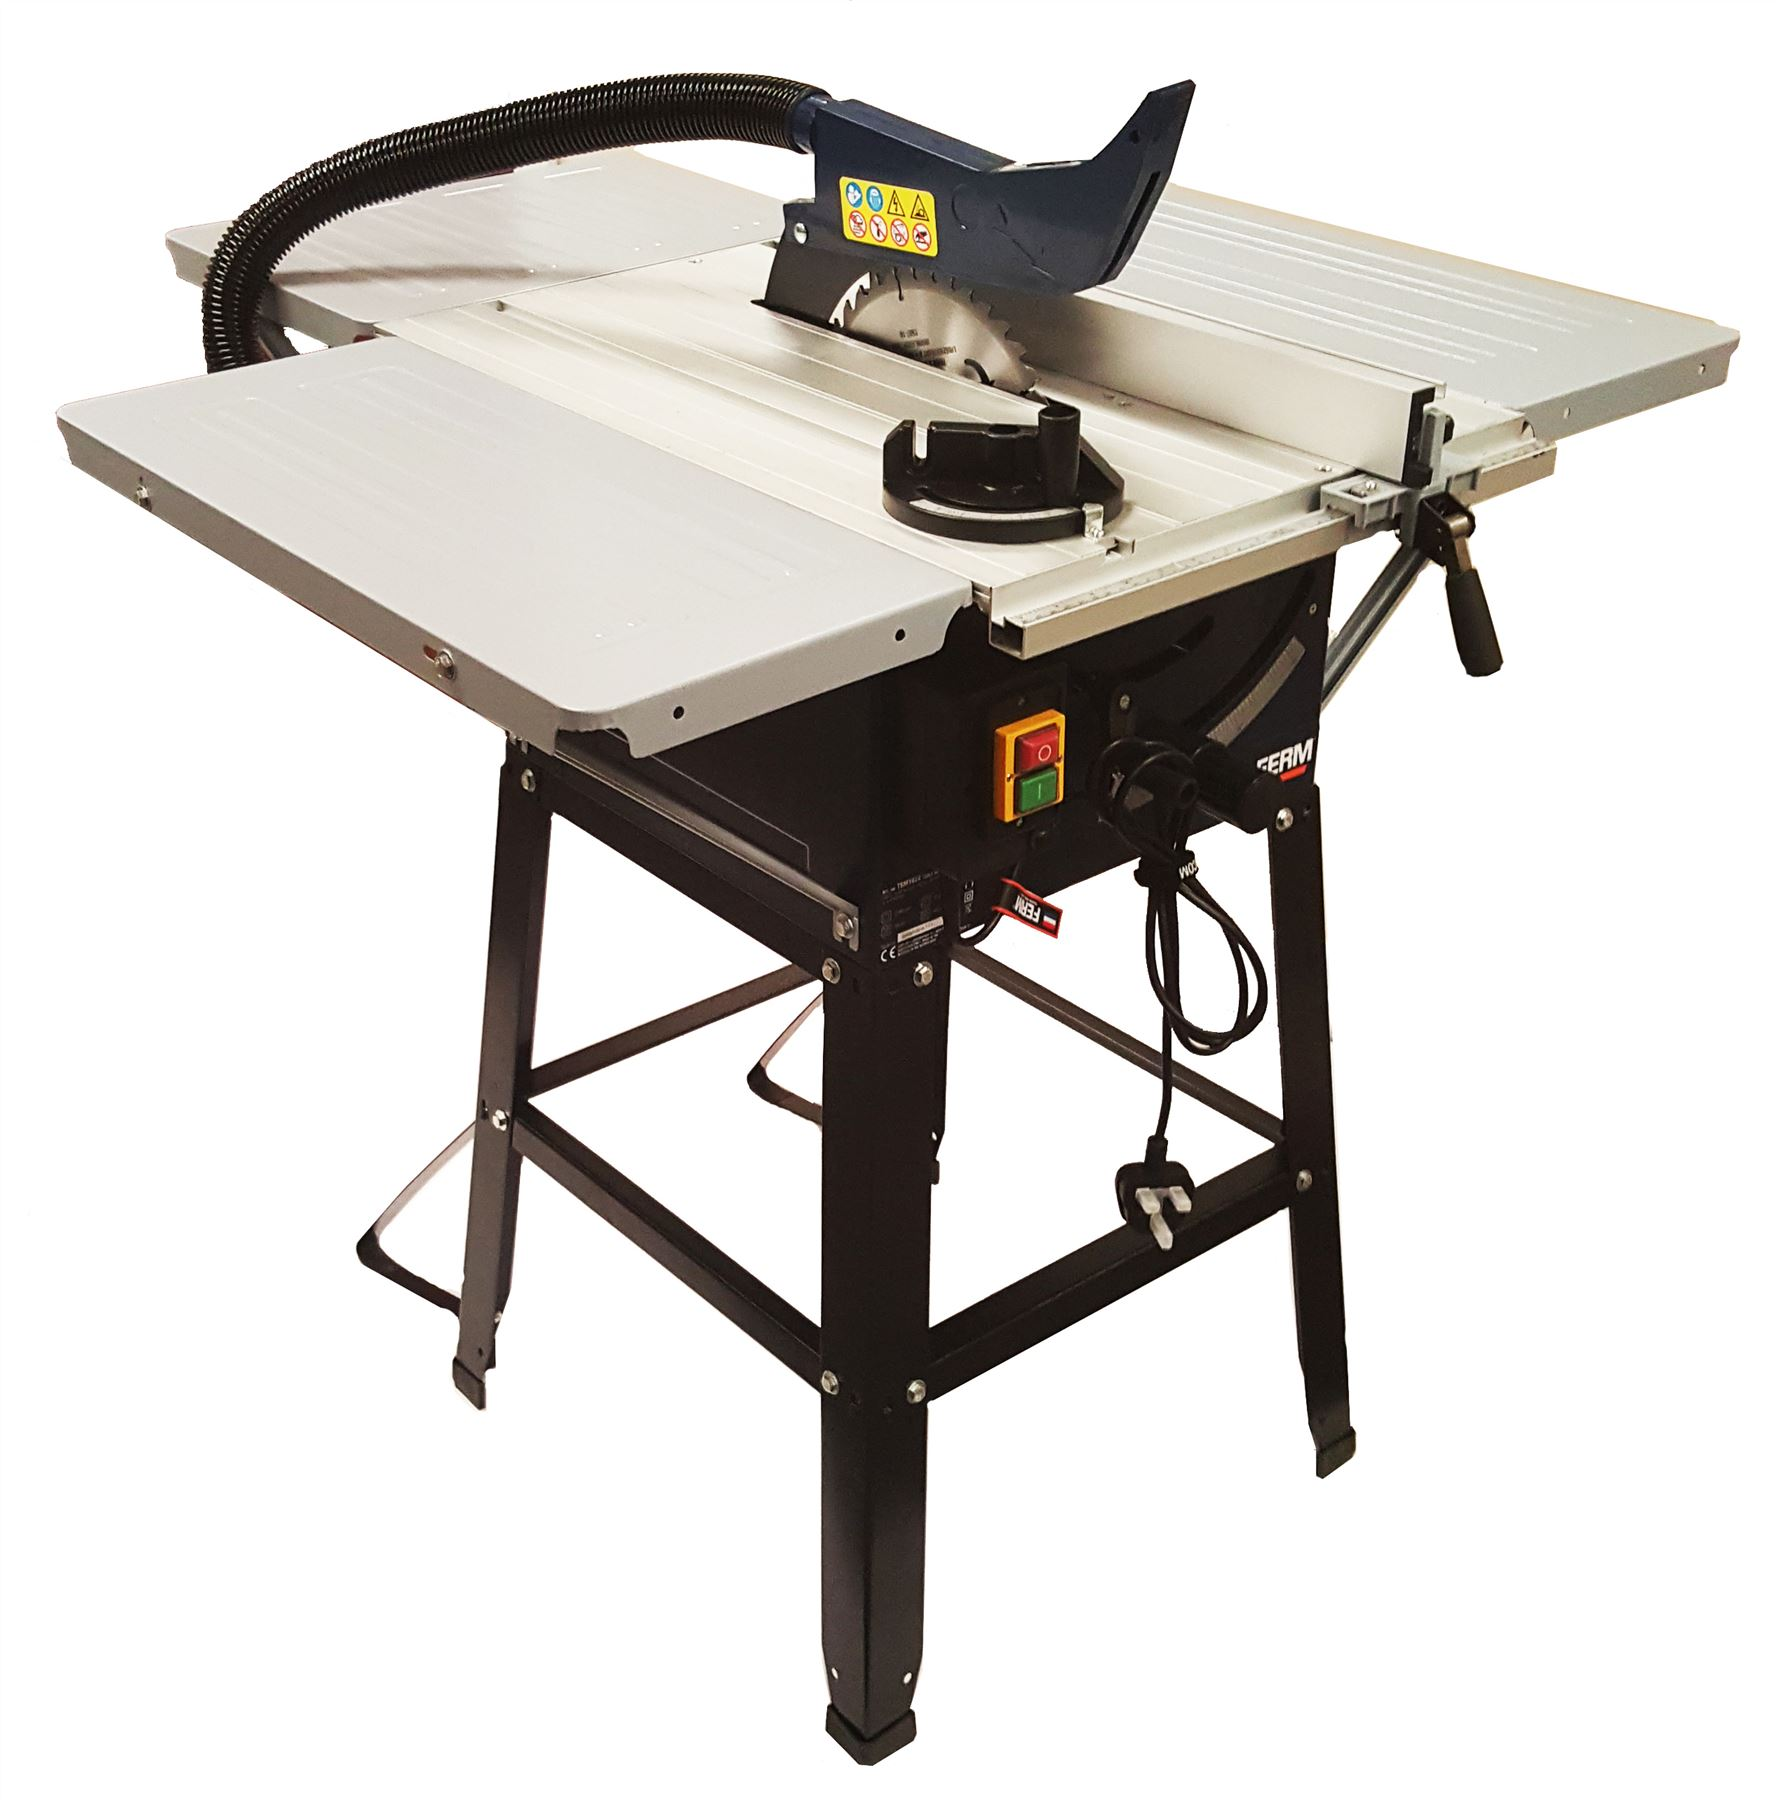 Ferm 1800w 10 250mm Table Saw Triple Side Extension Tables Ebay